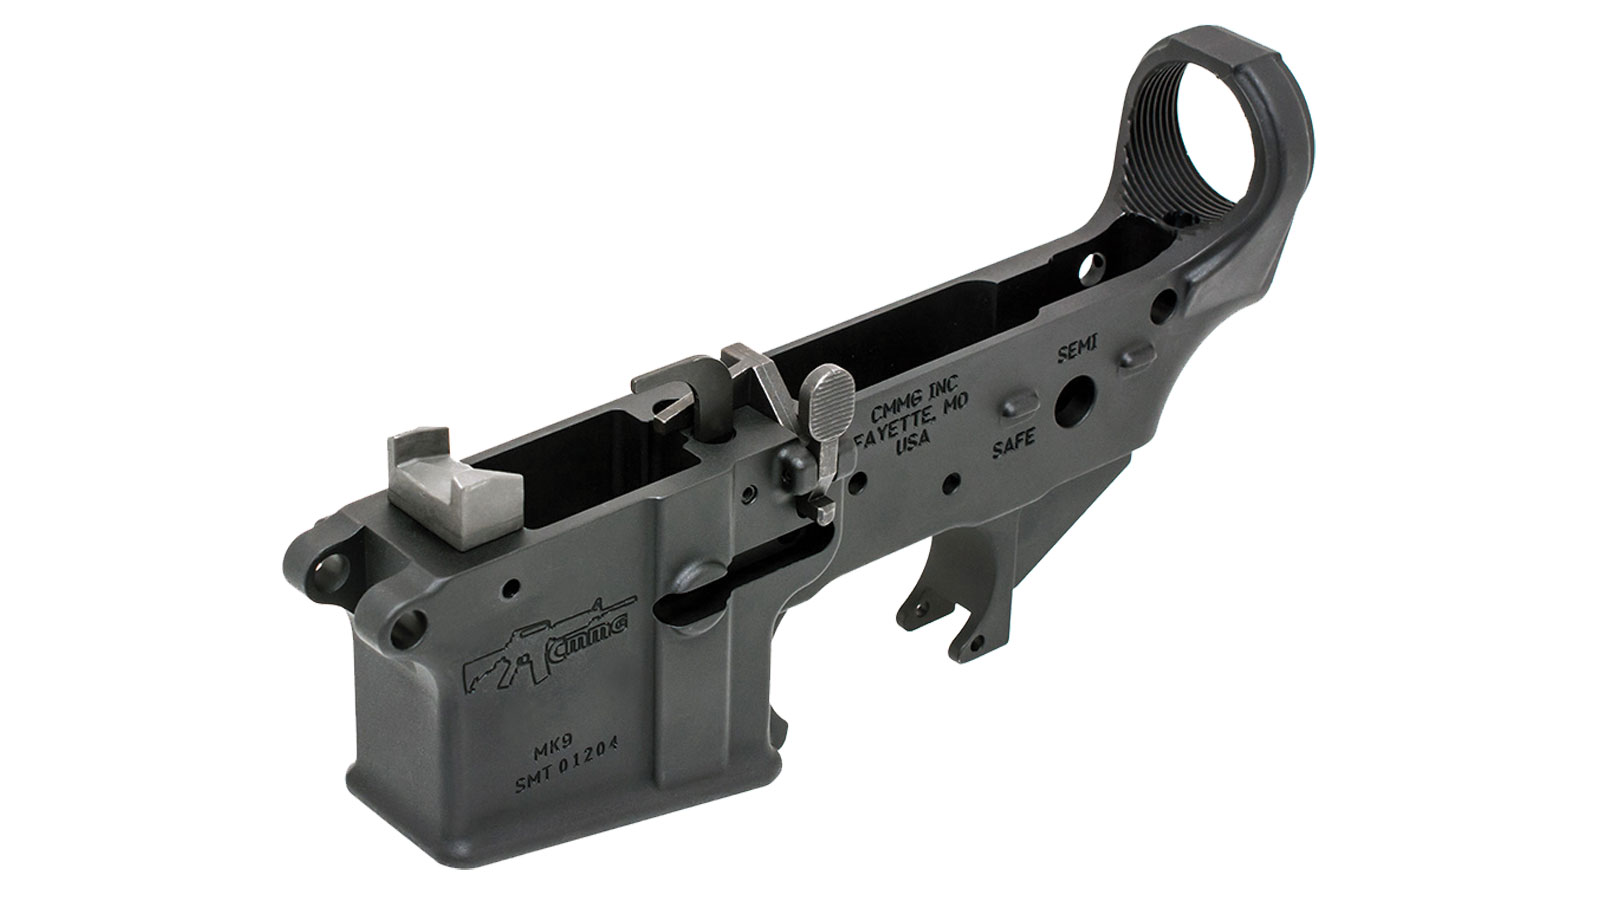 CMMG 90CA2F3 Lower Receiver Sub-Assm